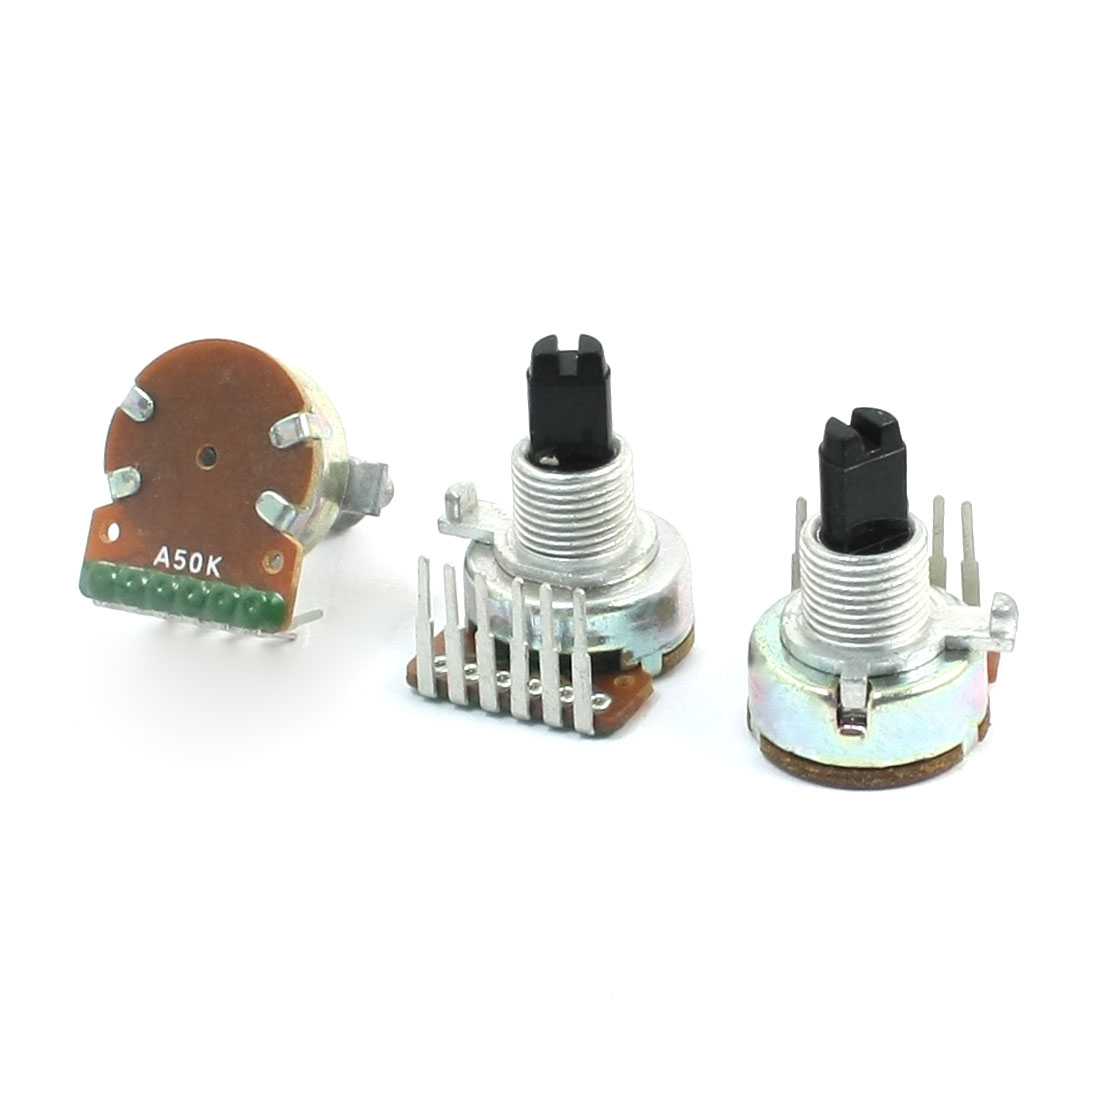 3pcs A Type 50K Ohm Top Adjustment 15mm Shaft Height Rotary Potentiometer